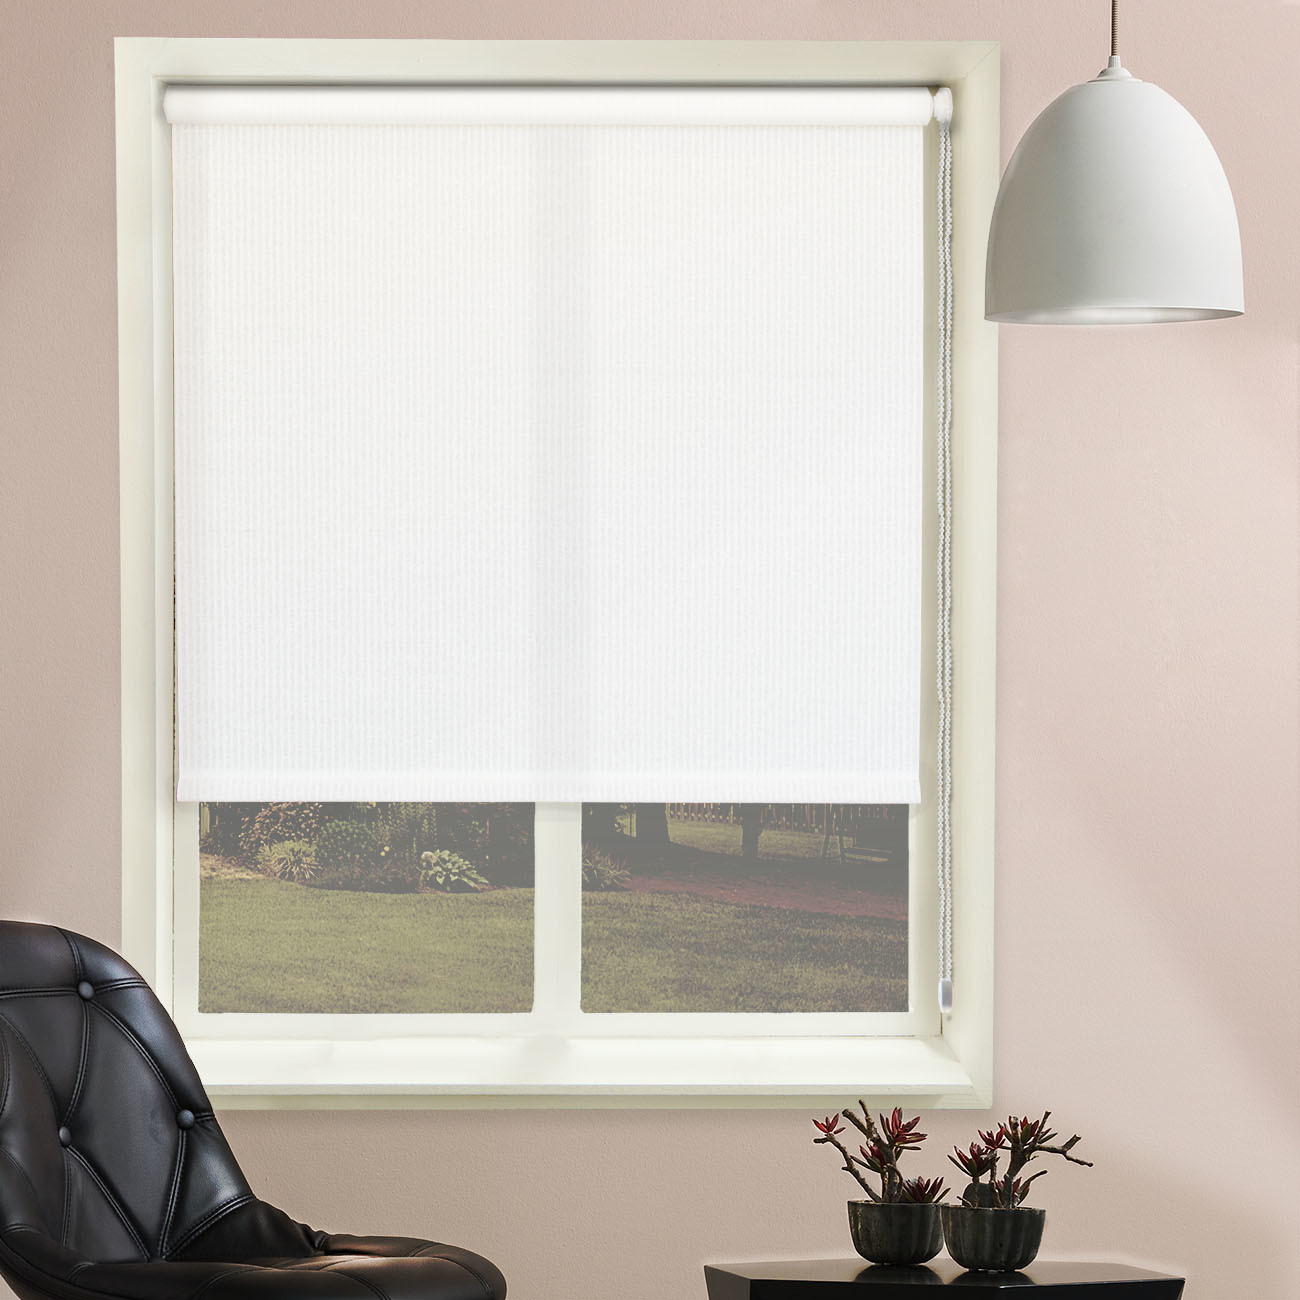 Excellent Menards Window Blinds for Best Window Blind Ideas: Menards Window Blinds | Menards Credit | Blinds At Menards